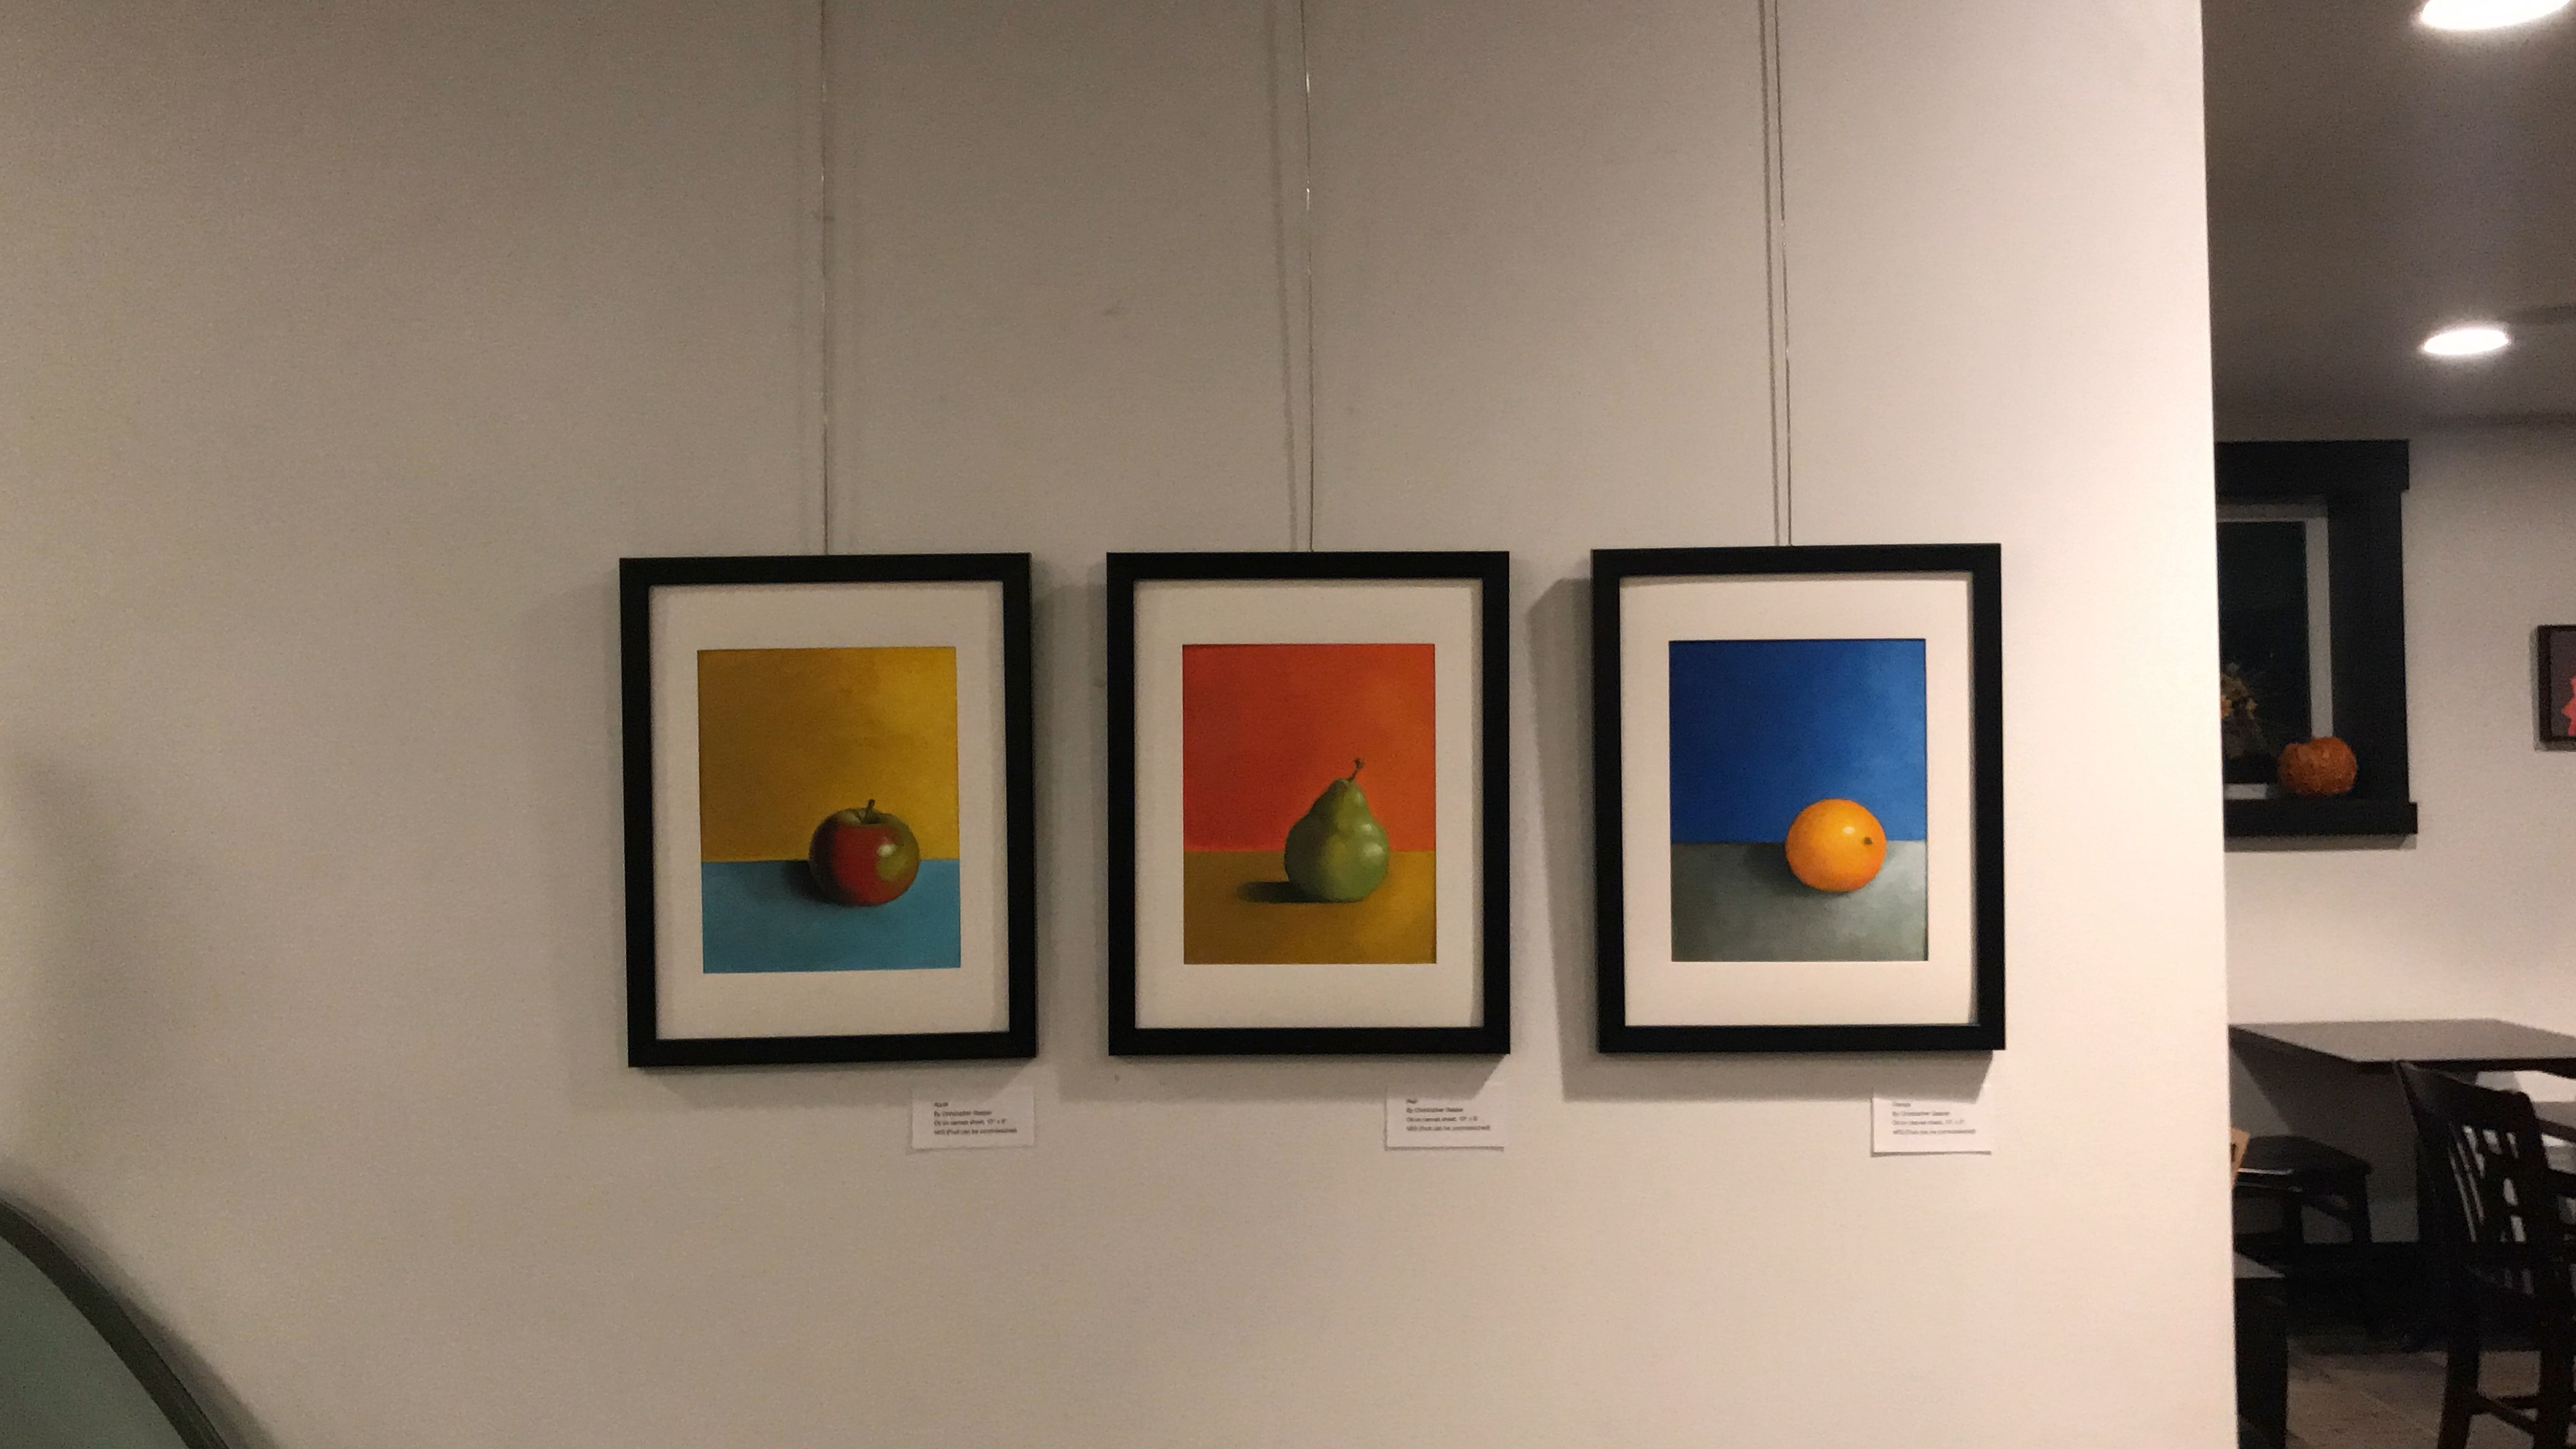 Apple, Pear, Orange Paintings